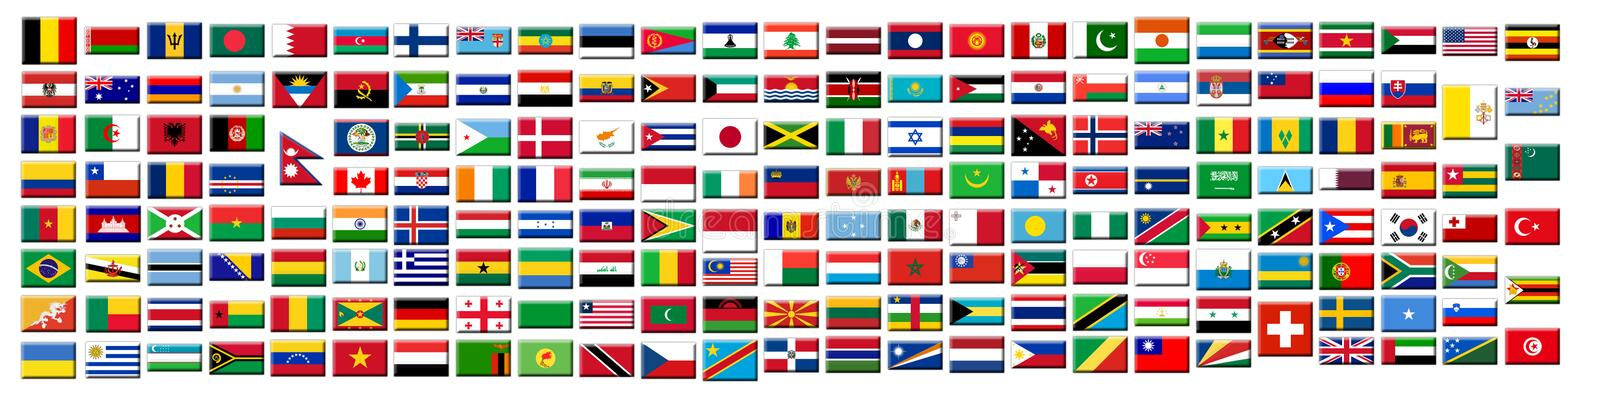 Flags buttons. 195 flags of the world royalty free illustration